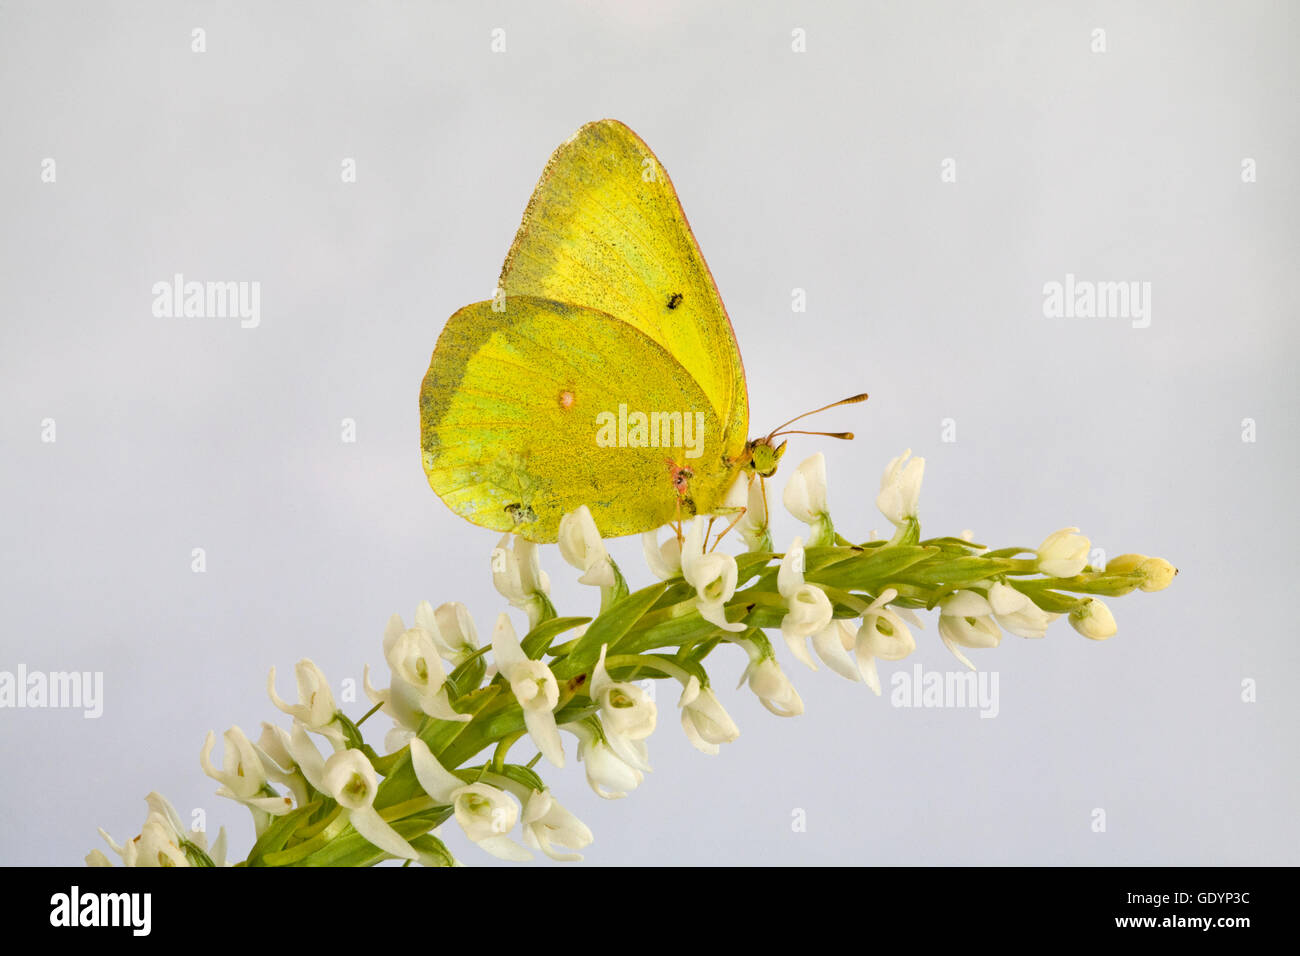 A clouded sulphur butterfly, Colias philodice, taking nectar from a flower Stock Photo